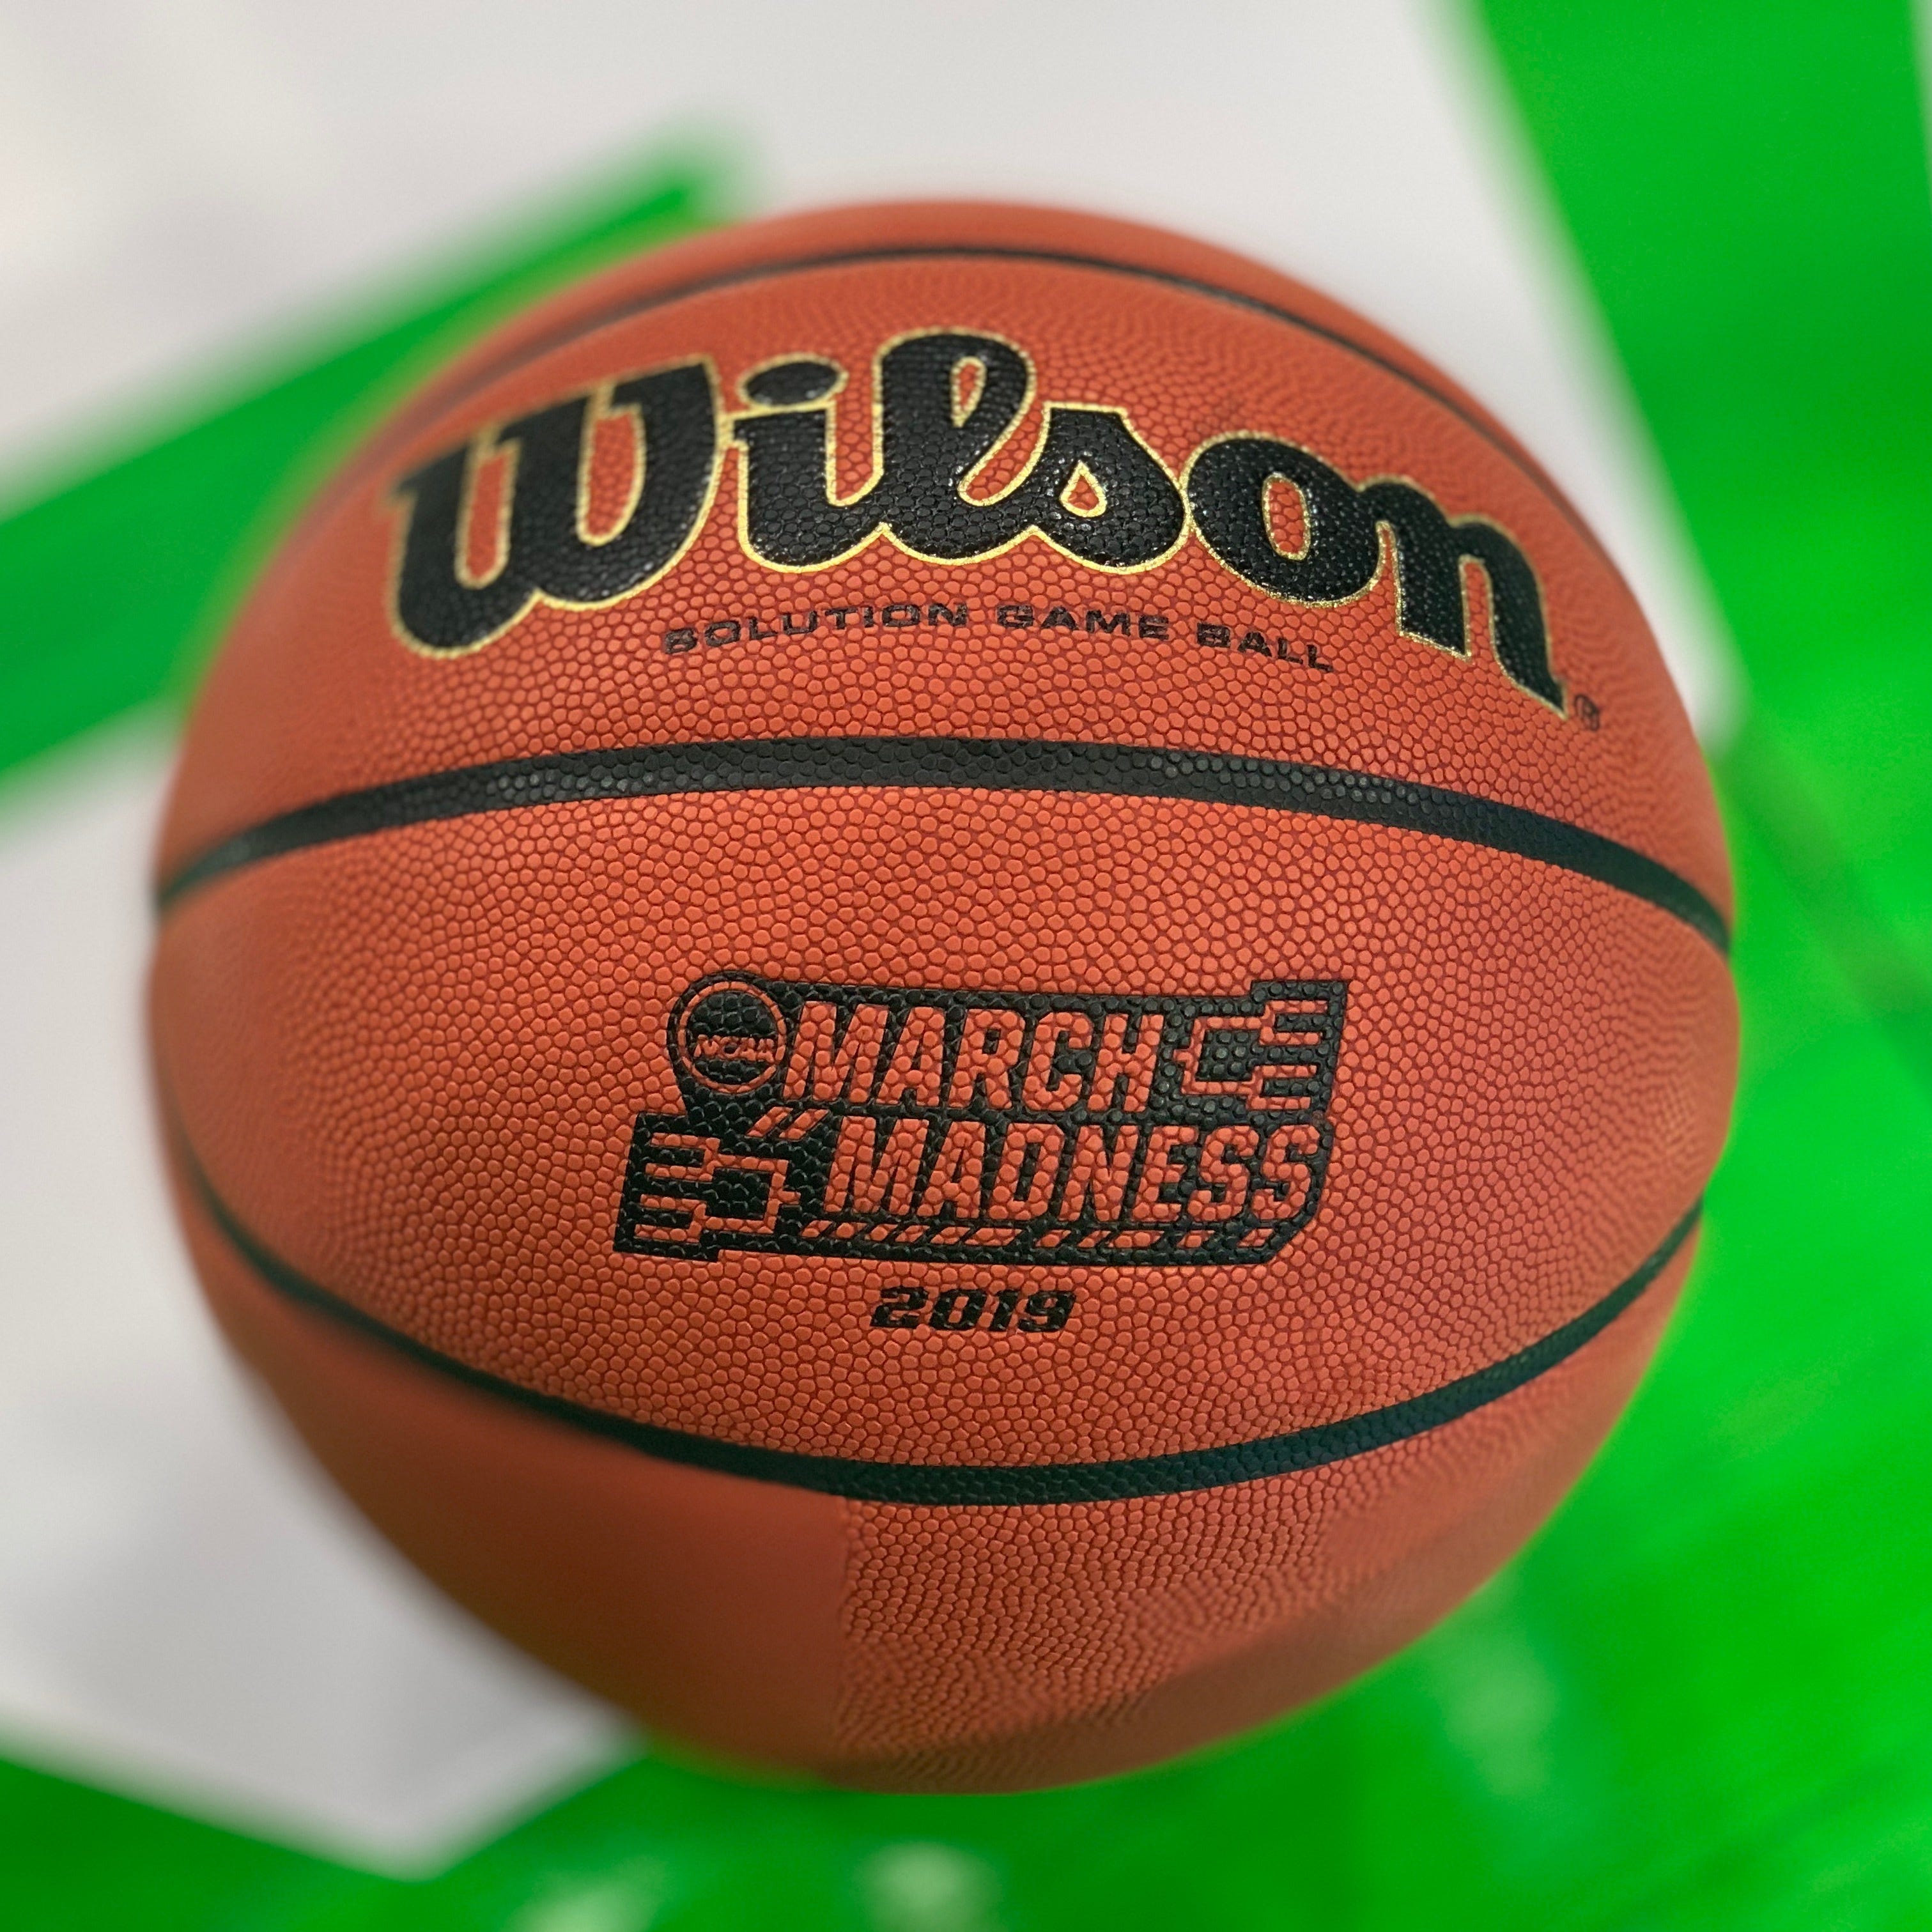 NCAA bracket: Everything you need to dominate your 2019 March Madness pool